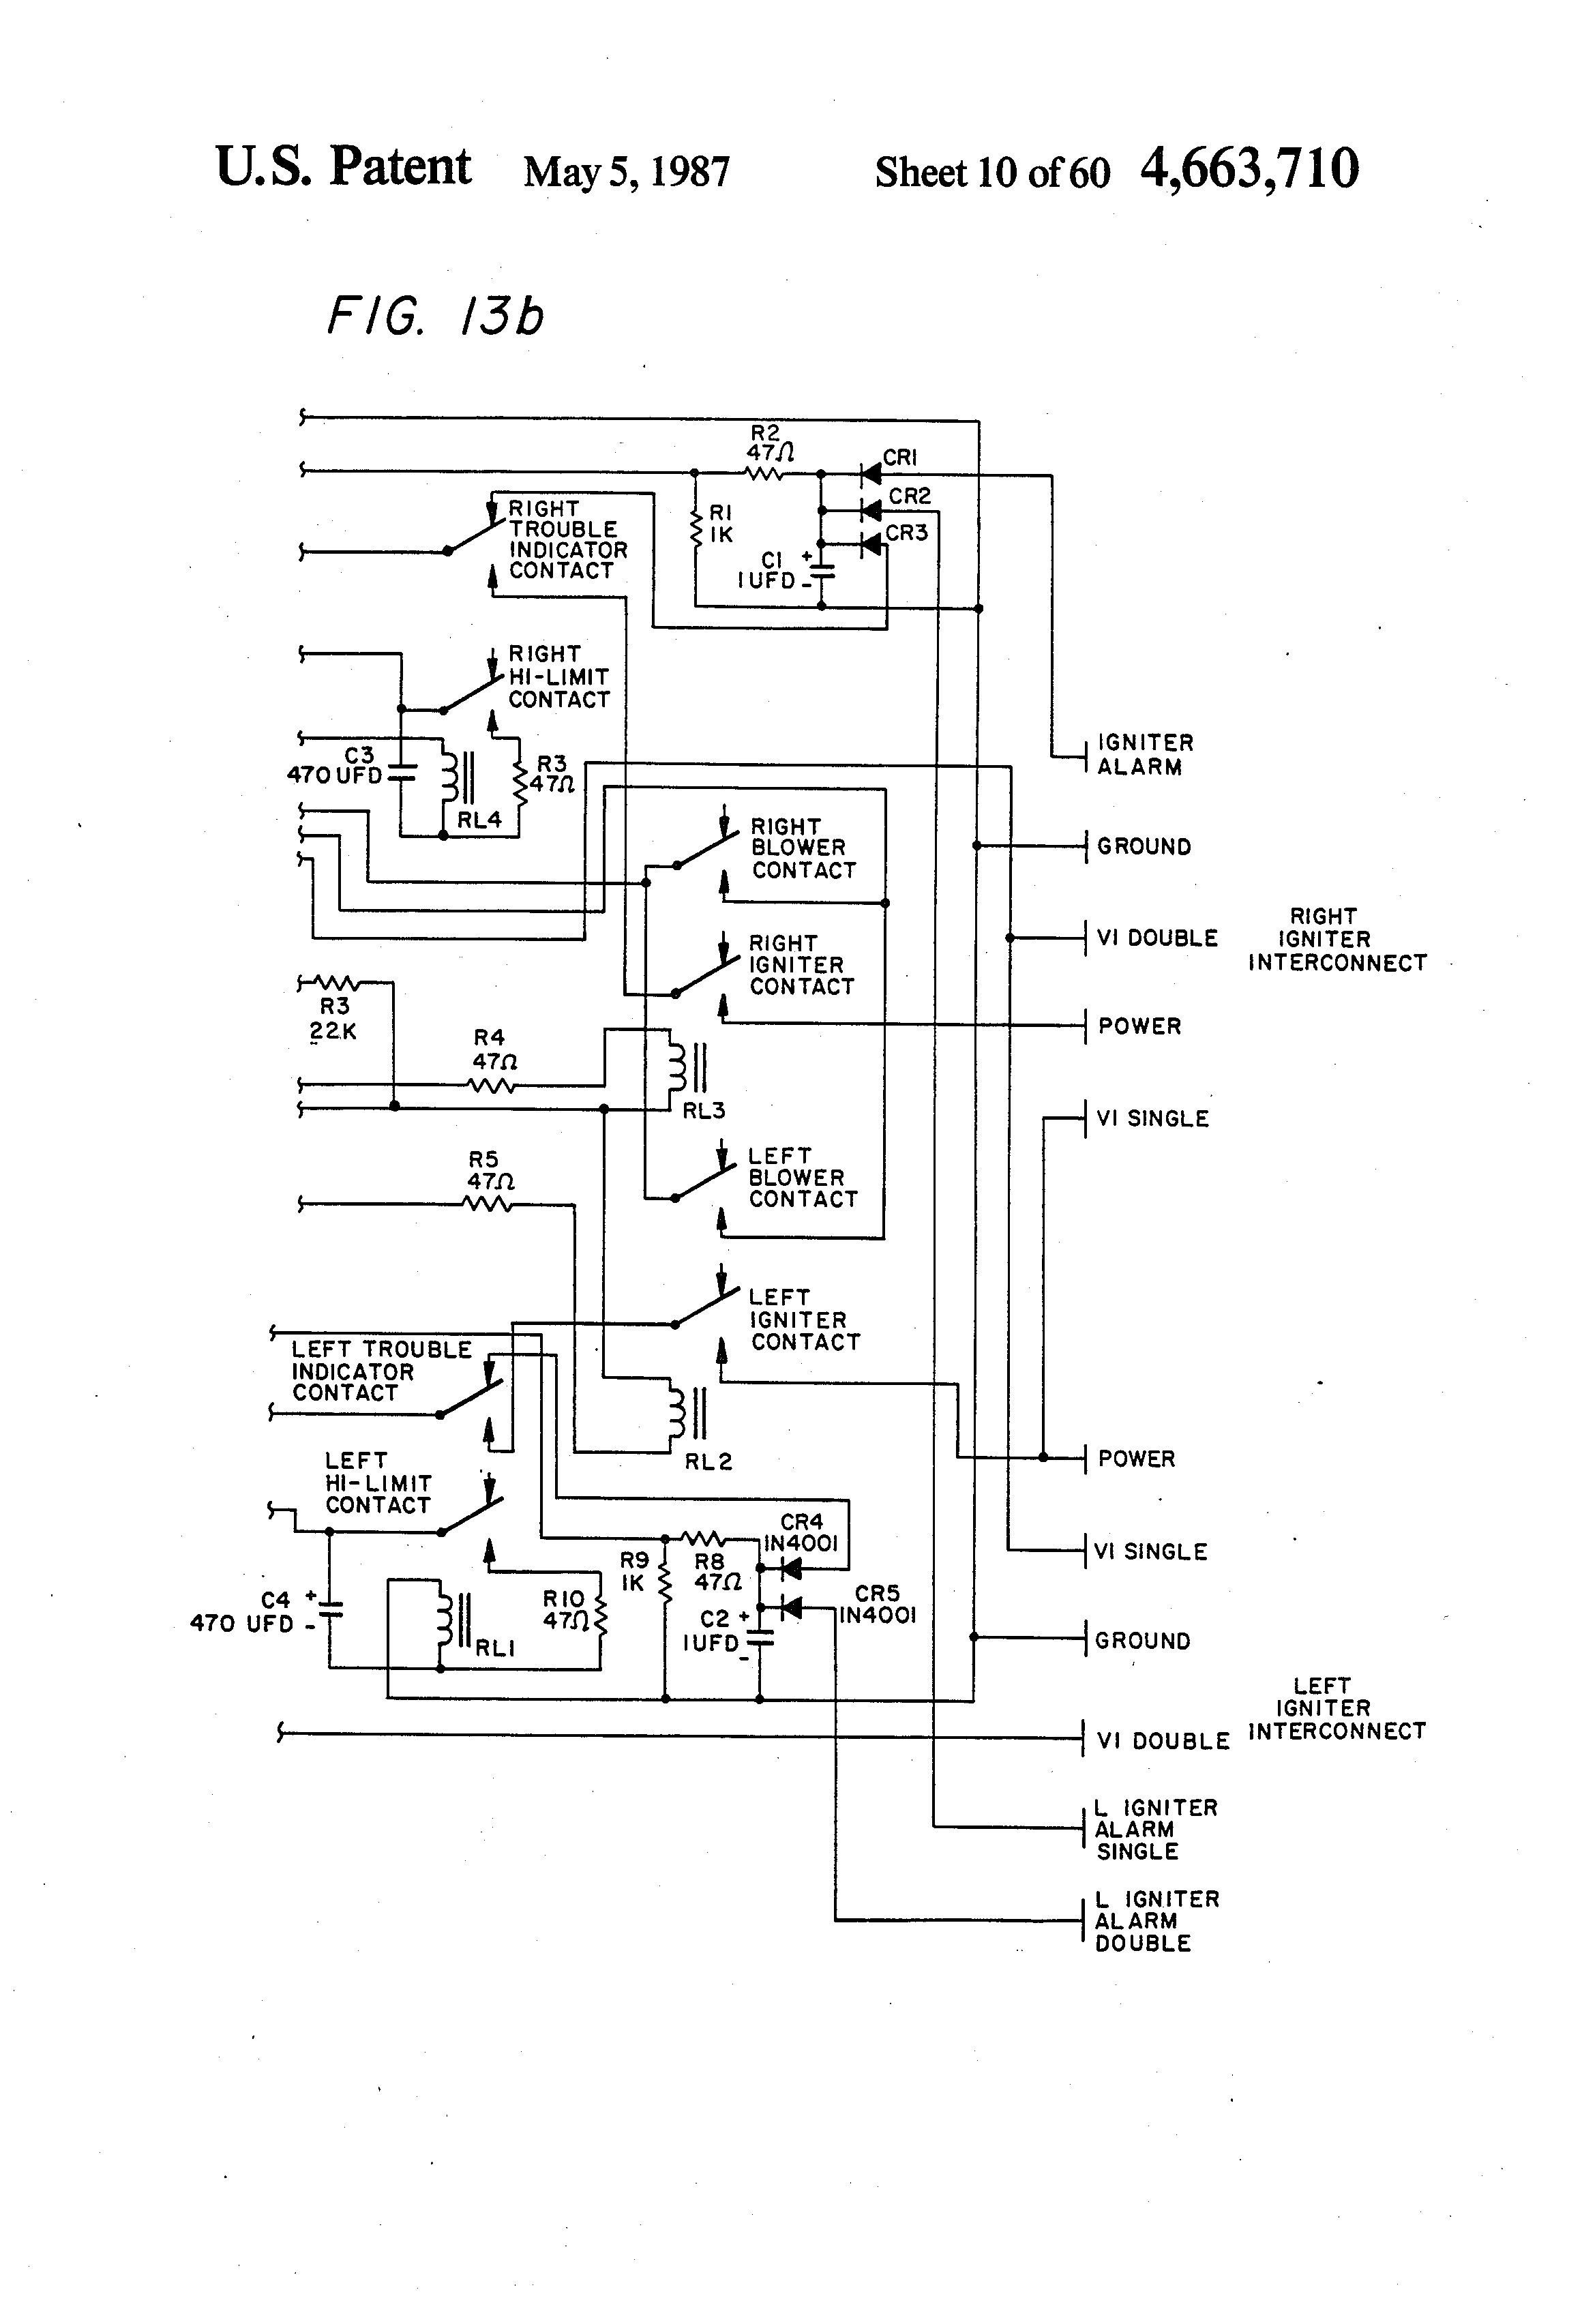 1991 chrysler imperial wiring diagram imperial deep fryer wiring diagram #14